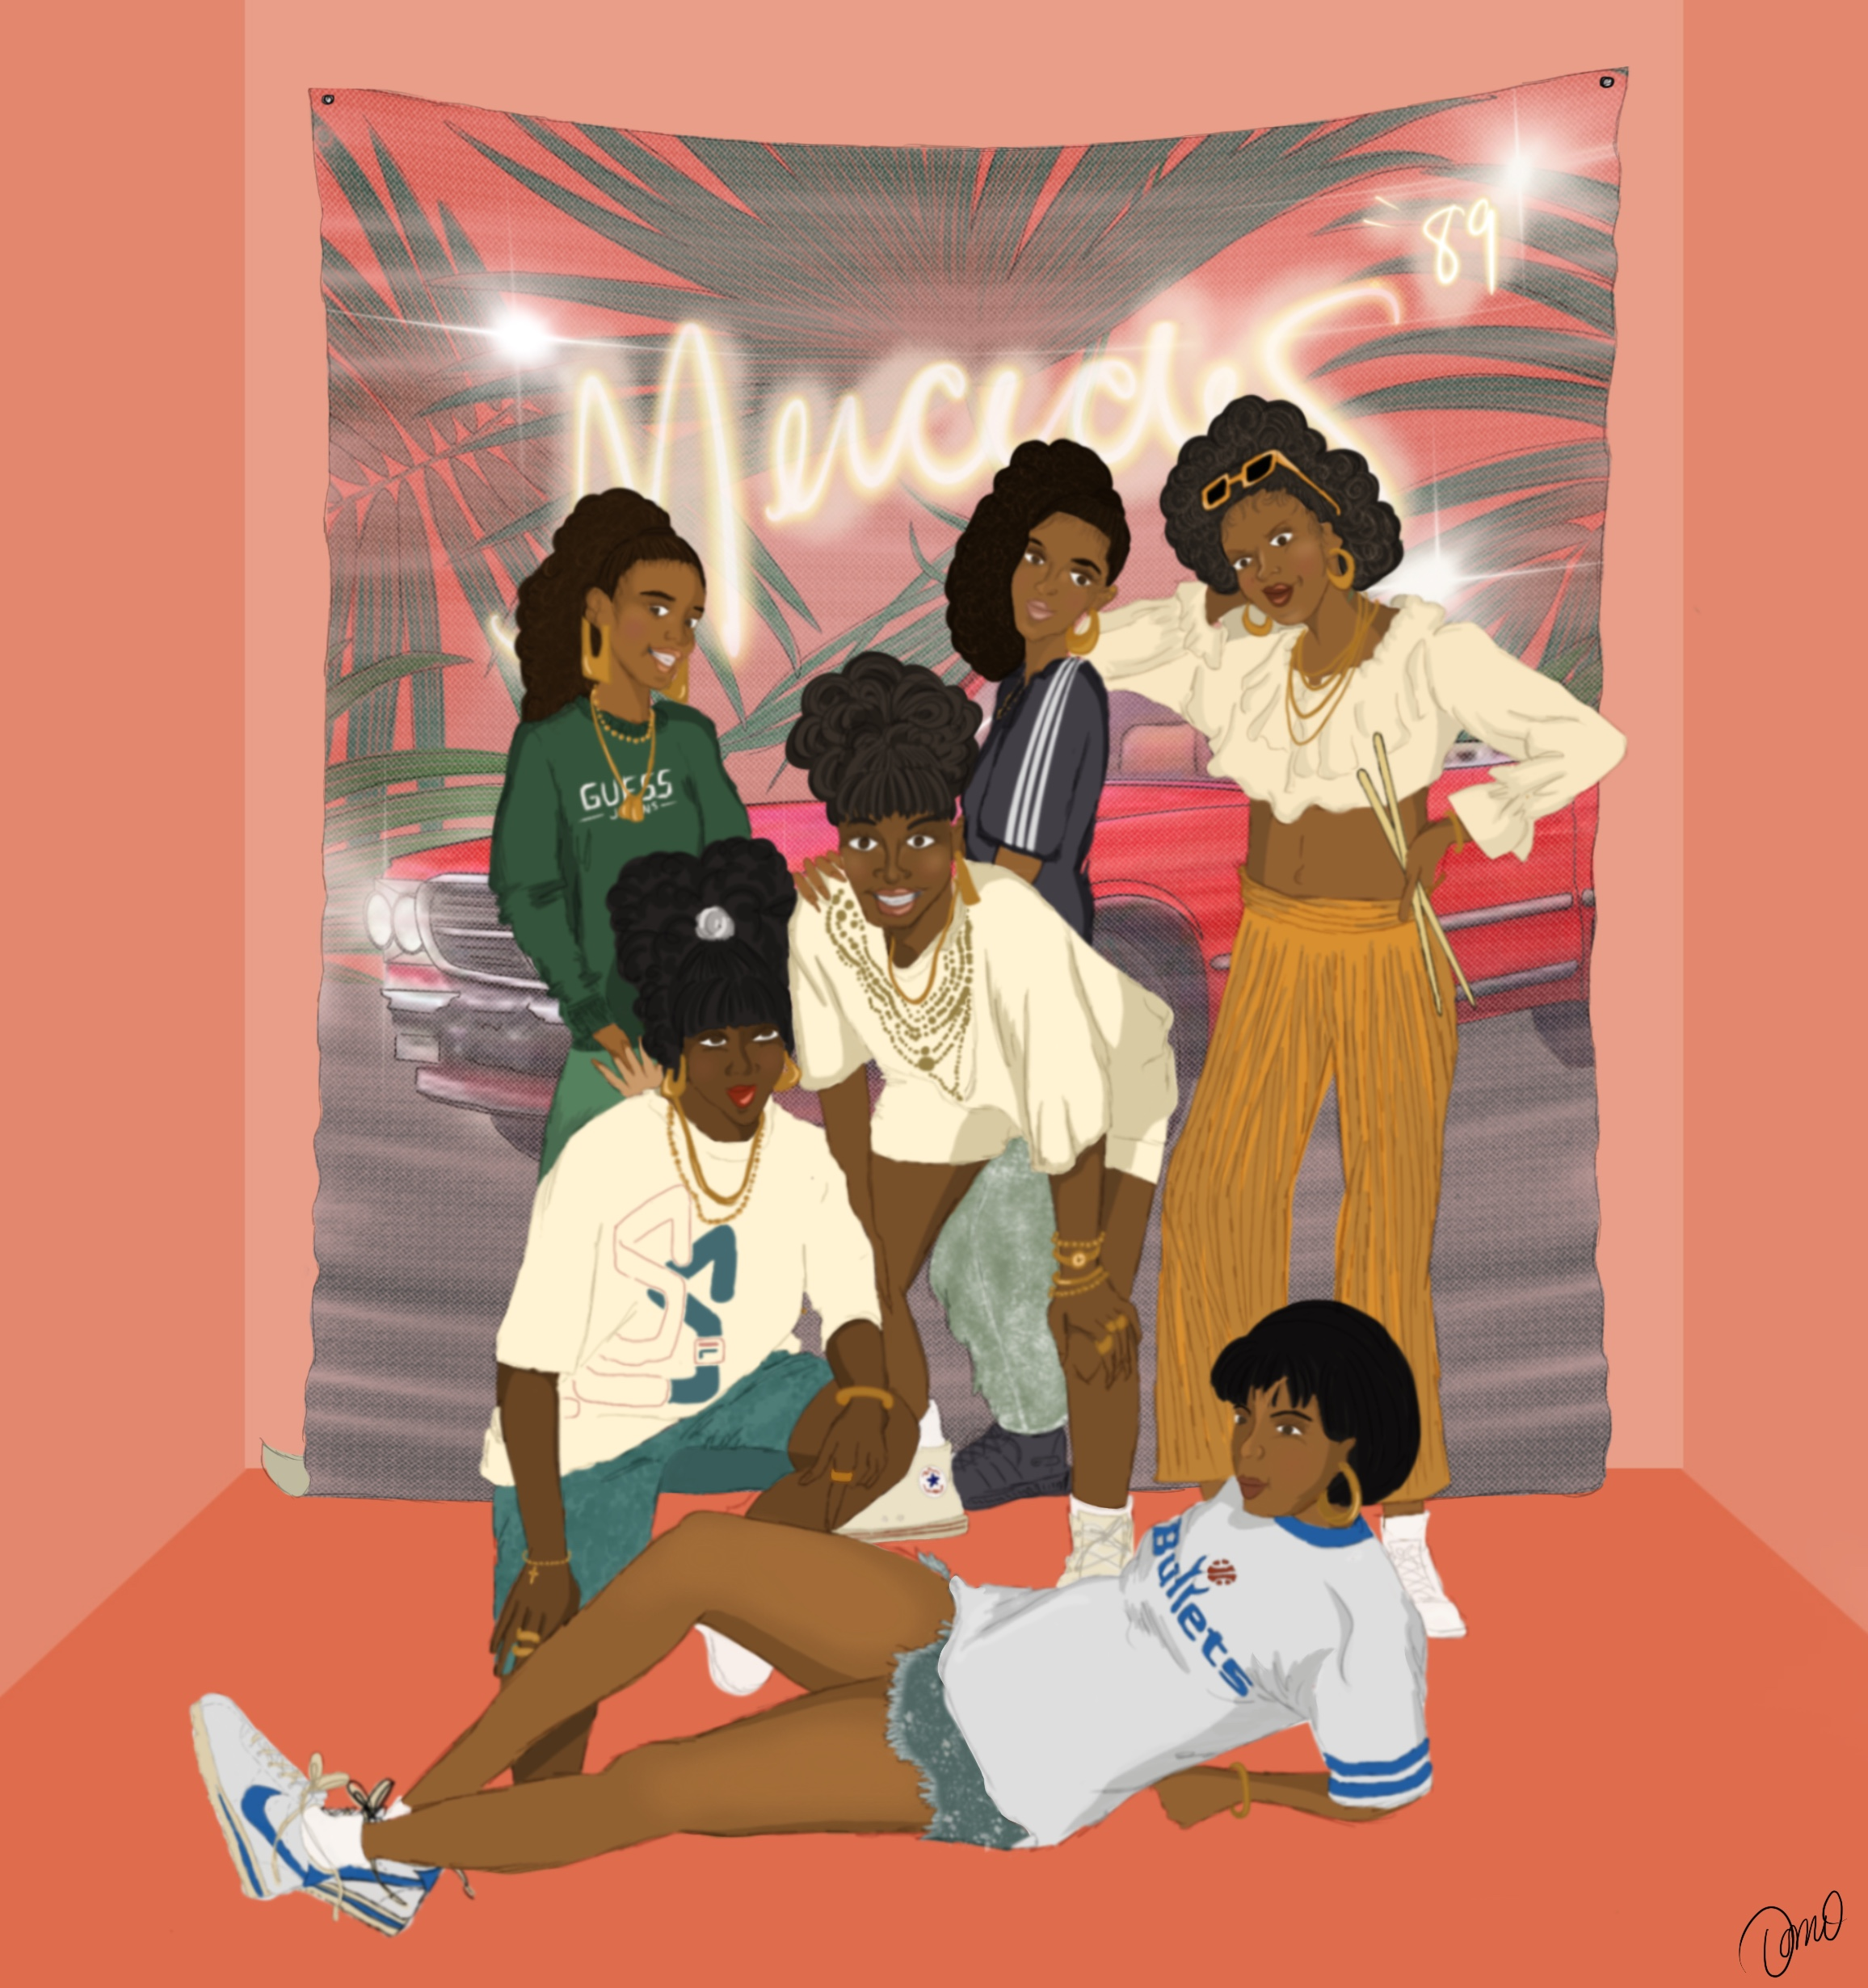 Digital drawing of 6 women posing together